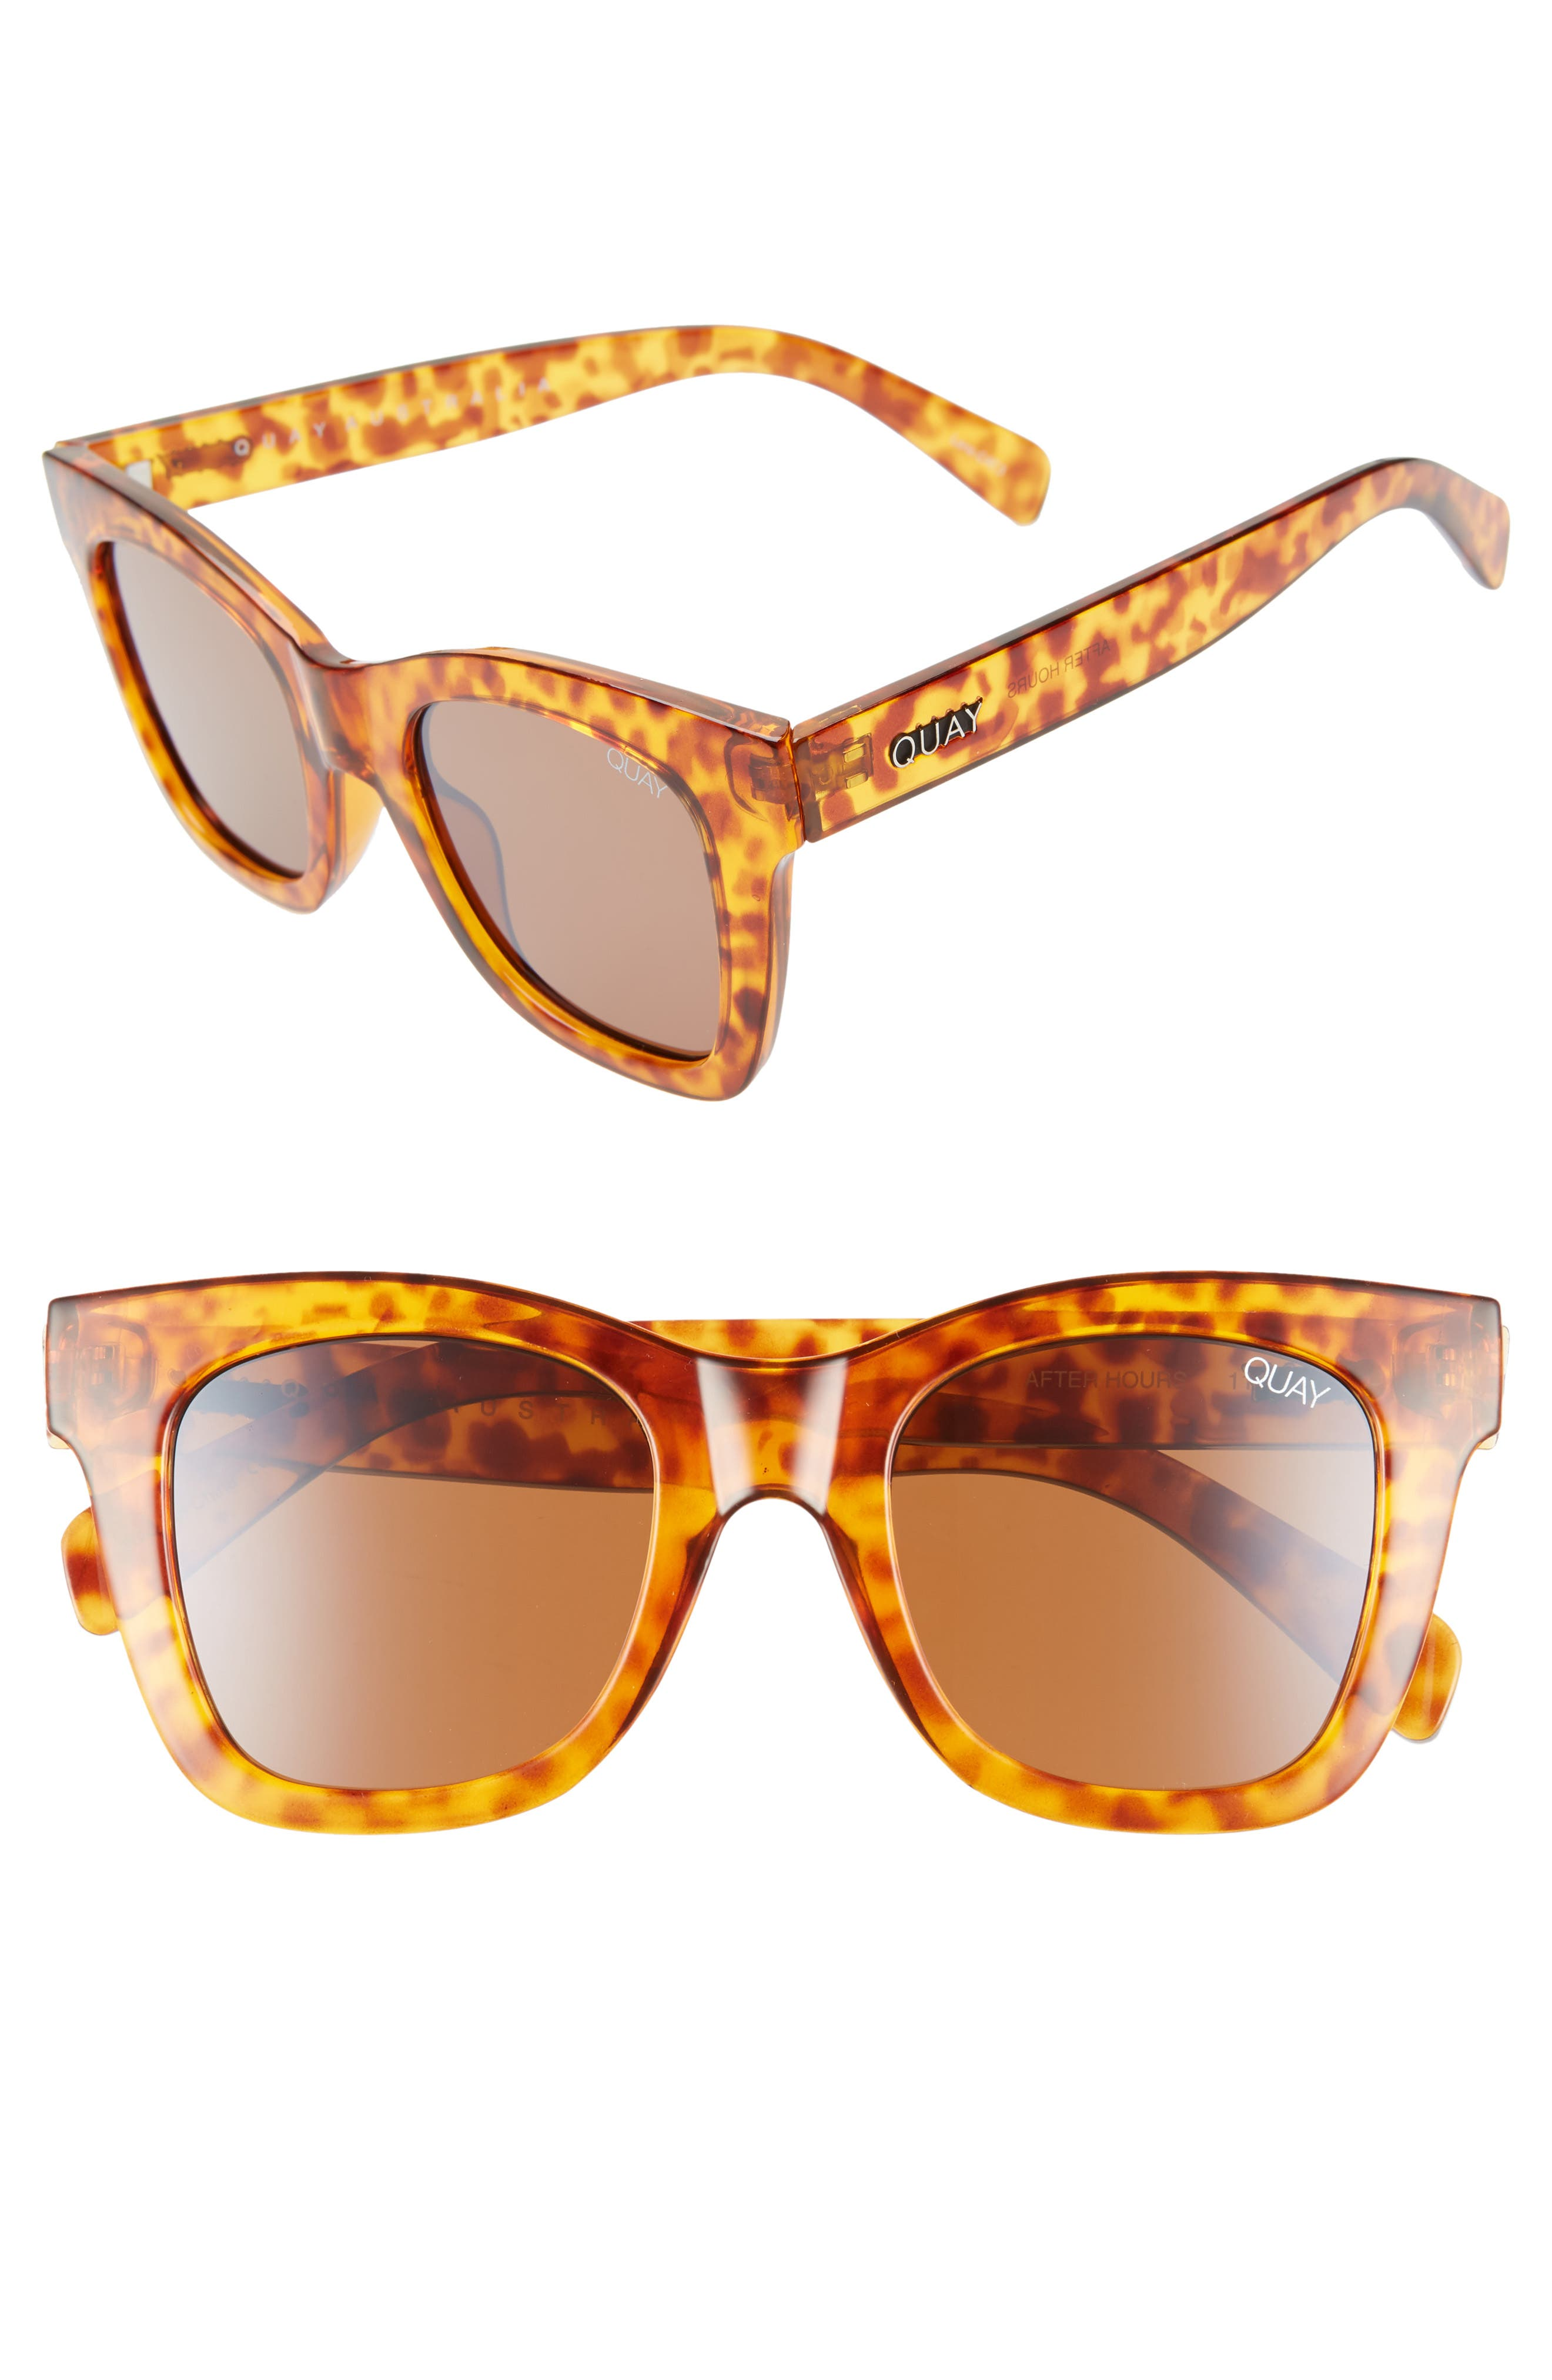 After Hours 50mm Square Sunglasses,                         Main,                         color, ORANGE TORT / BROWN